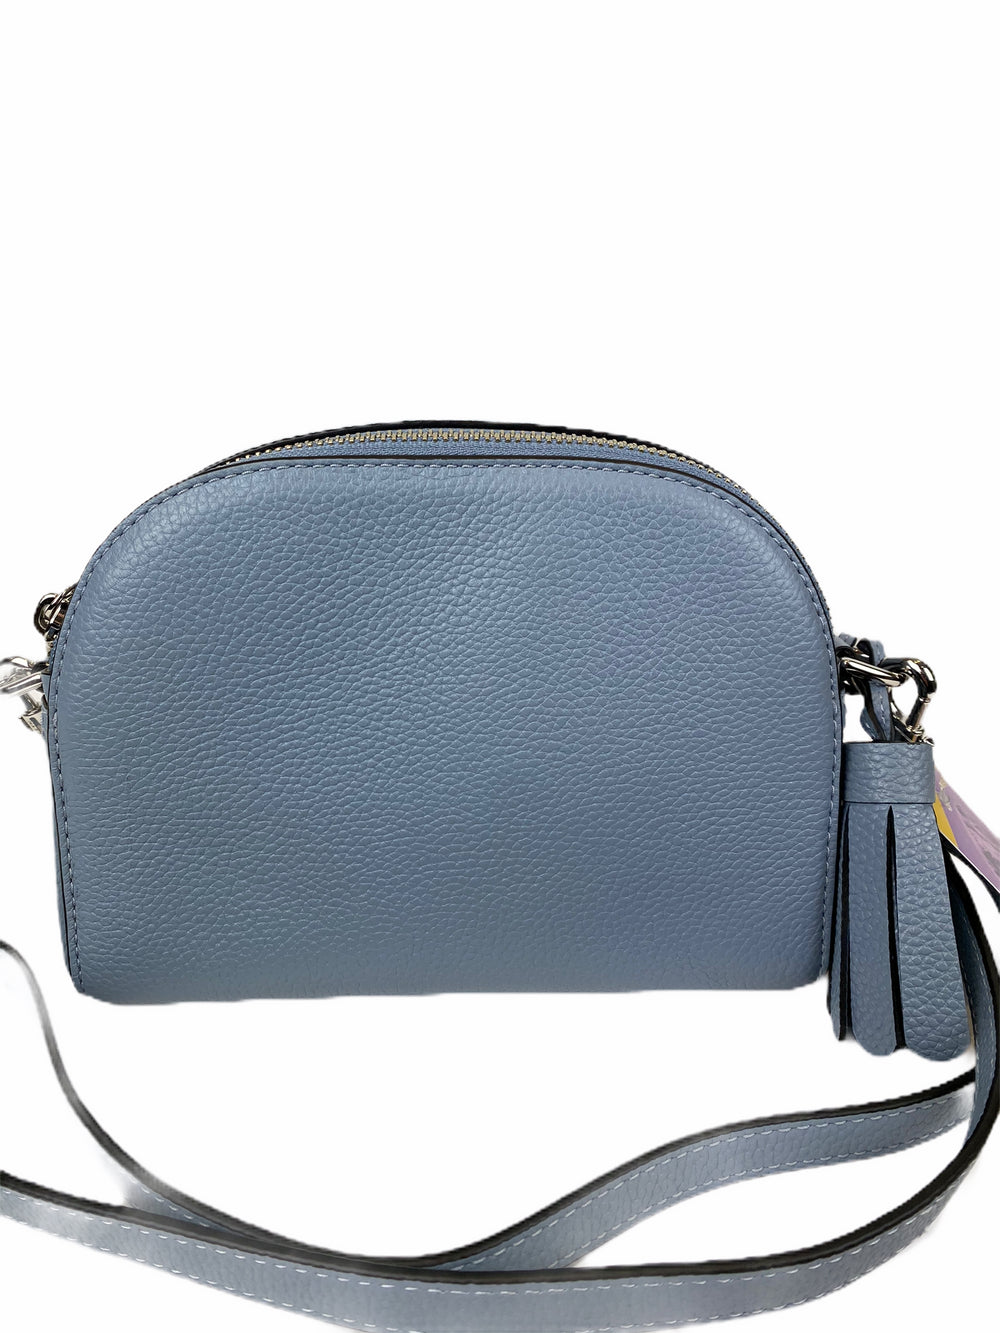 Marc Jacobs Baby Blue Leather Crossbody - As Seen on Instagram 30/08/2020